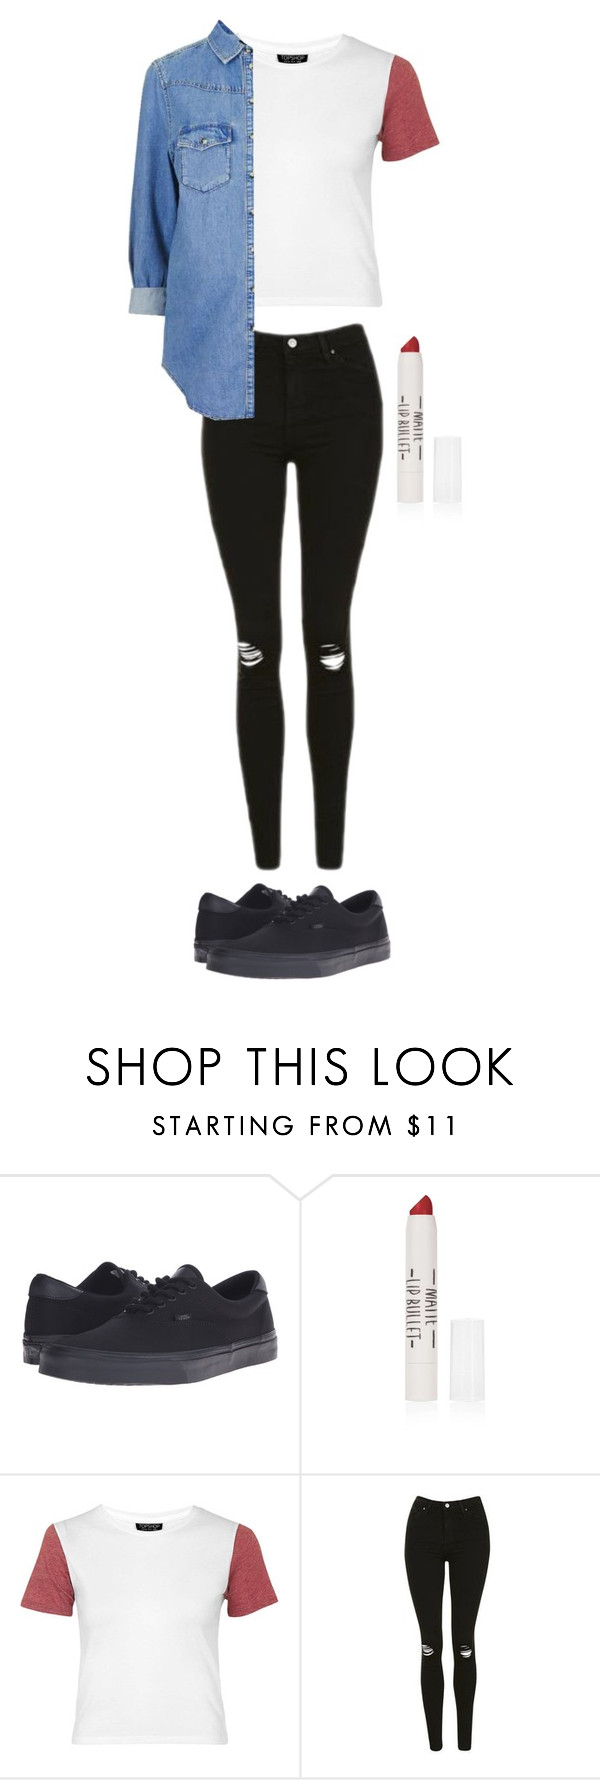 """""""Untitled #221"""" by sarahtwohig ❤ liked on Polyvore featuring Vans and Topshop"""